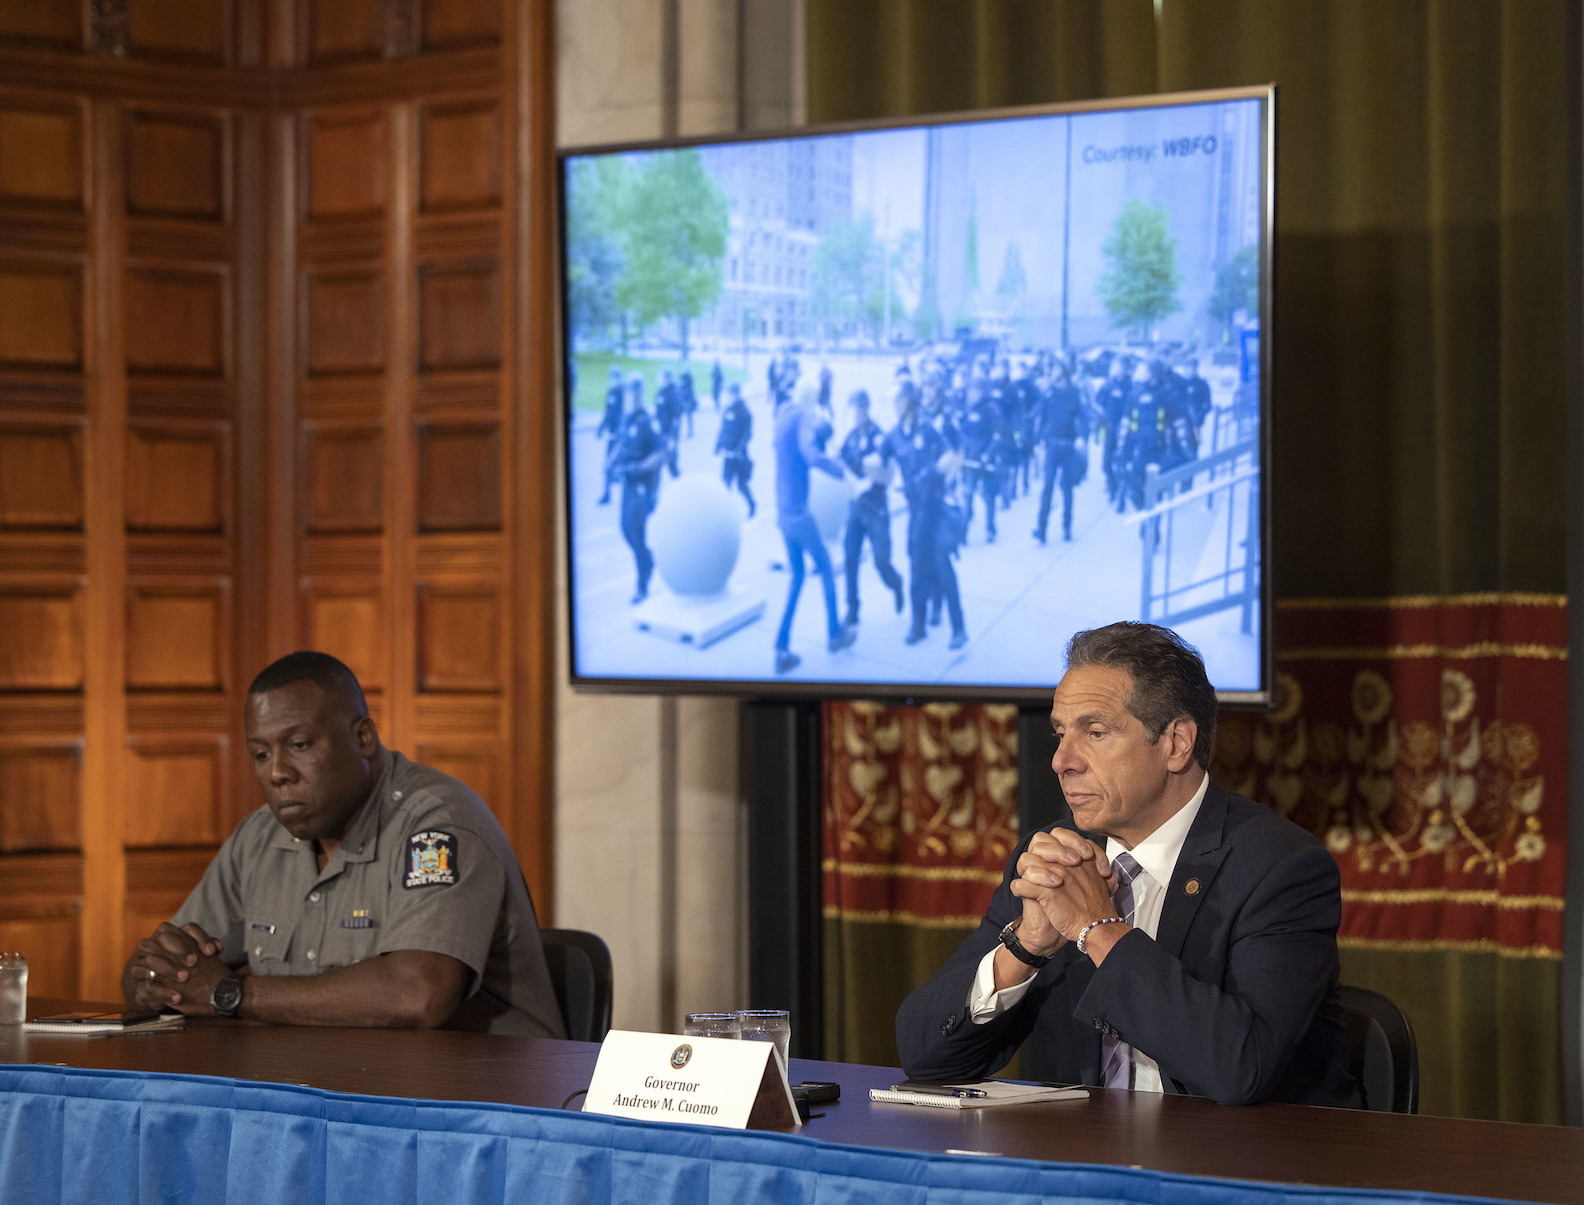 Gov. Andrew Cuomo provides updates on protests following George Floyd's death and the coronavirus during a press conference in the Red Room at the State Capitol. (Photo by Mike Groll/Office of Gov. Andrew M. Cuomo)